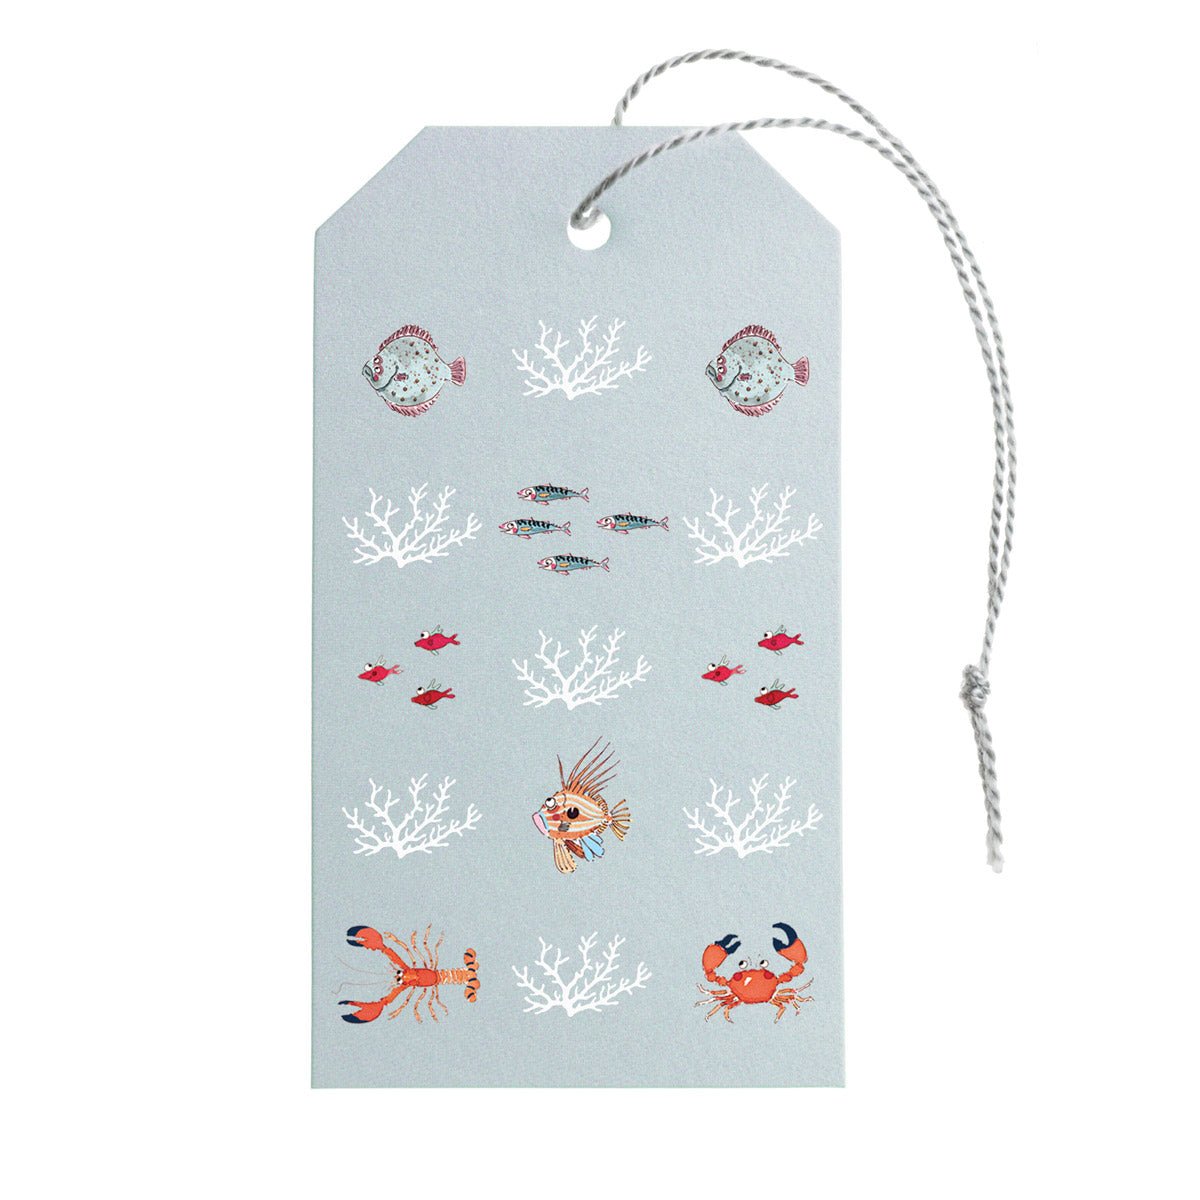 What a Catch! Gift Tags - Set of 10